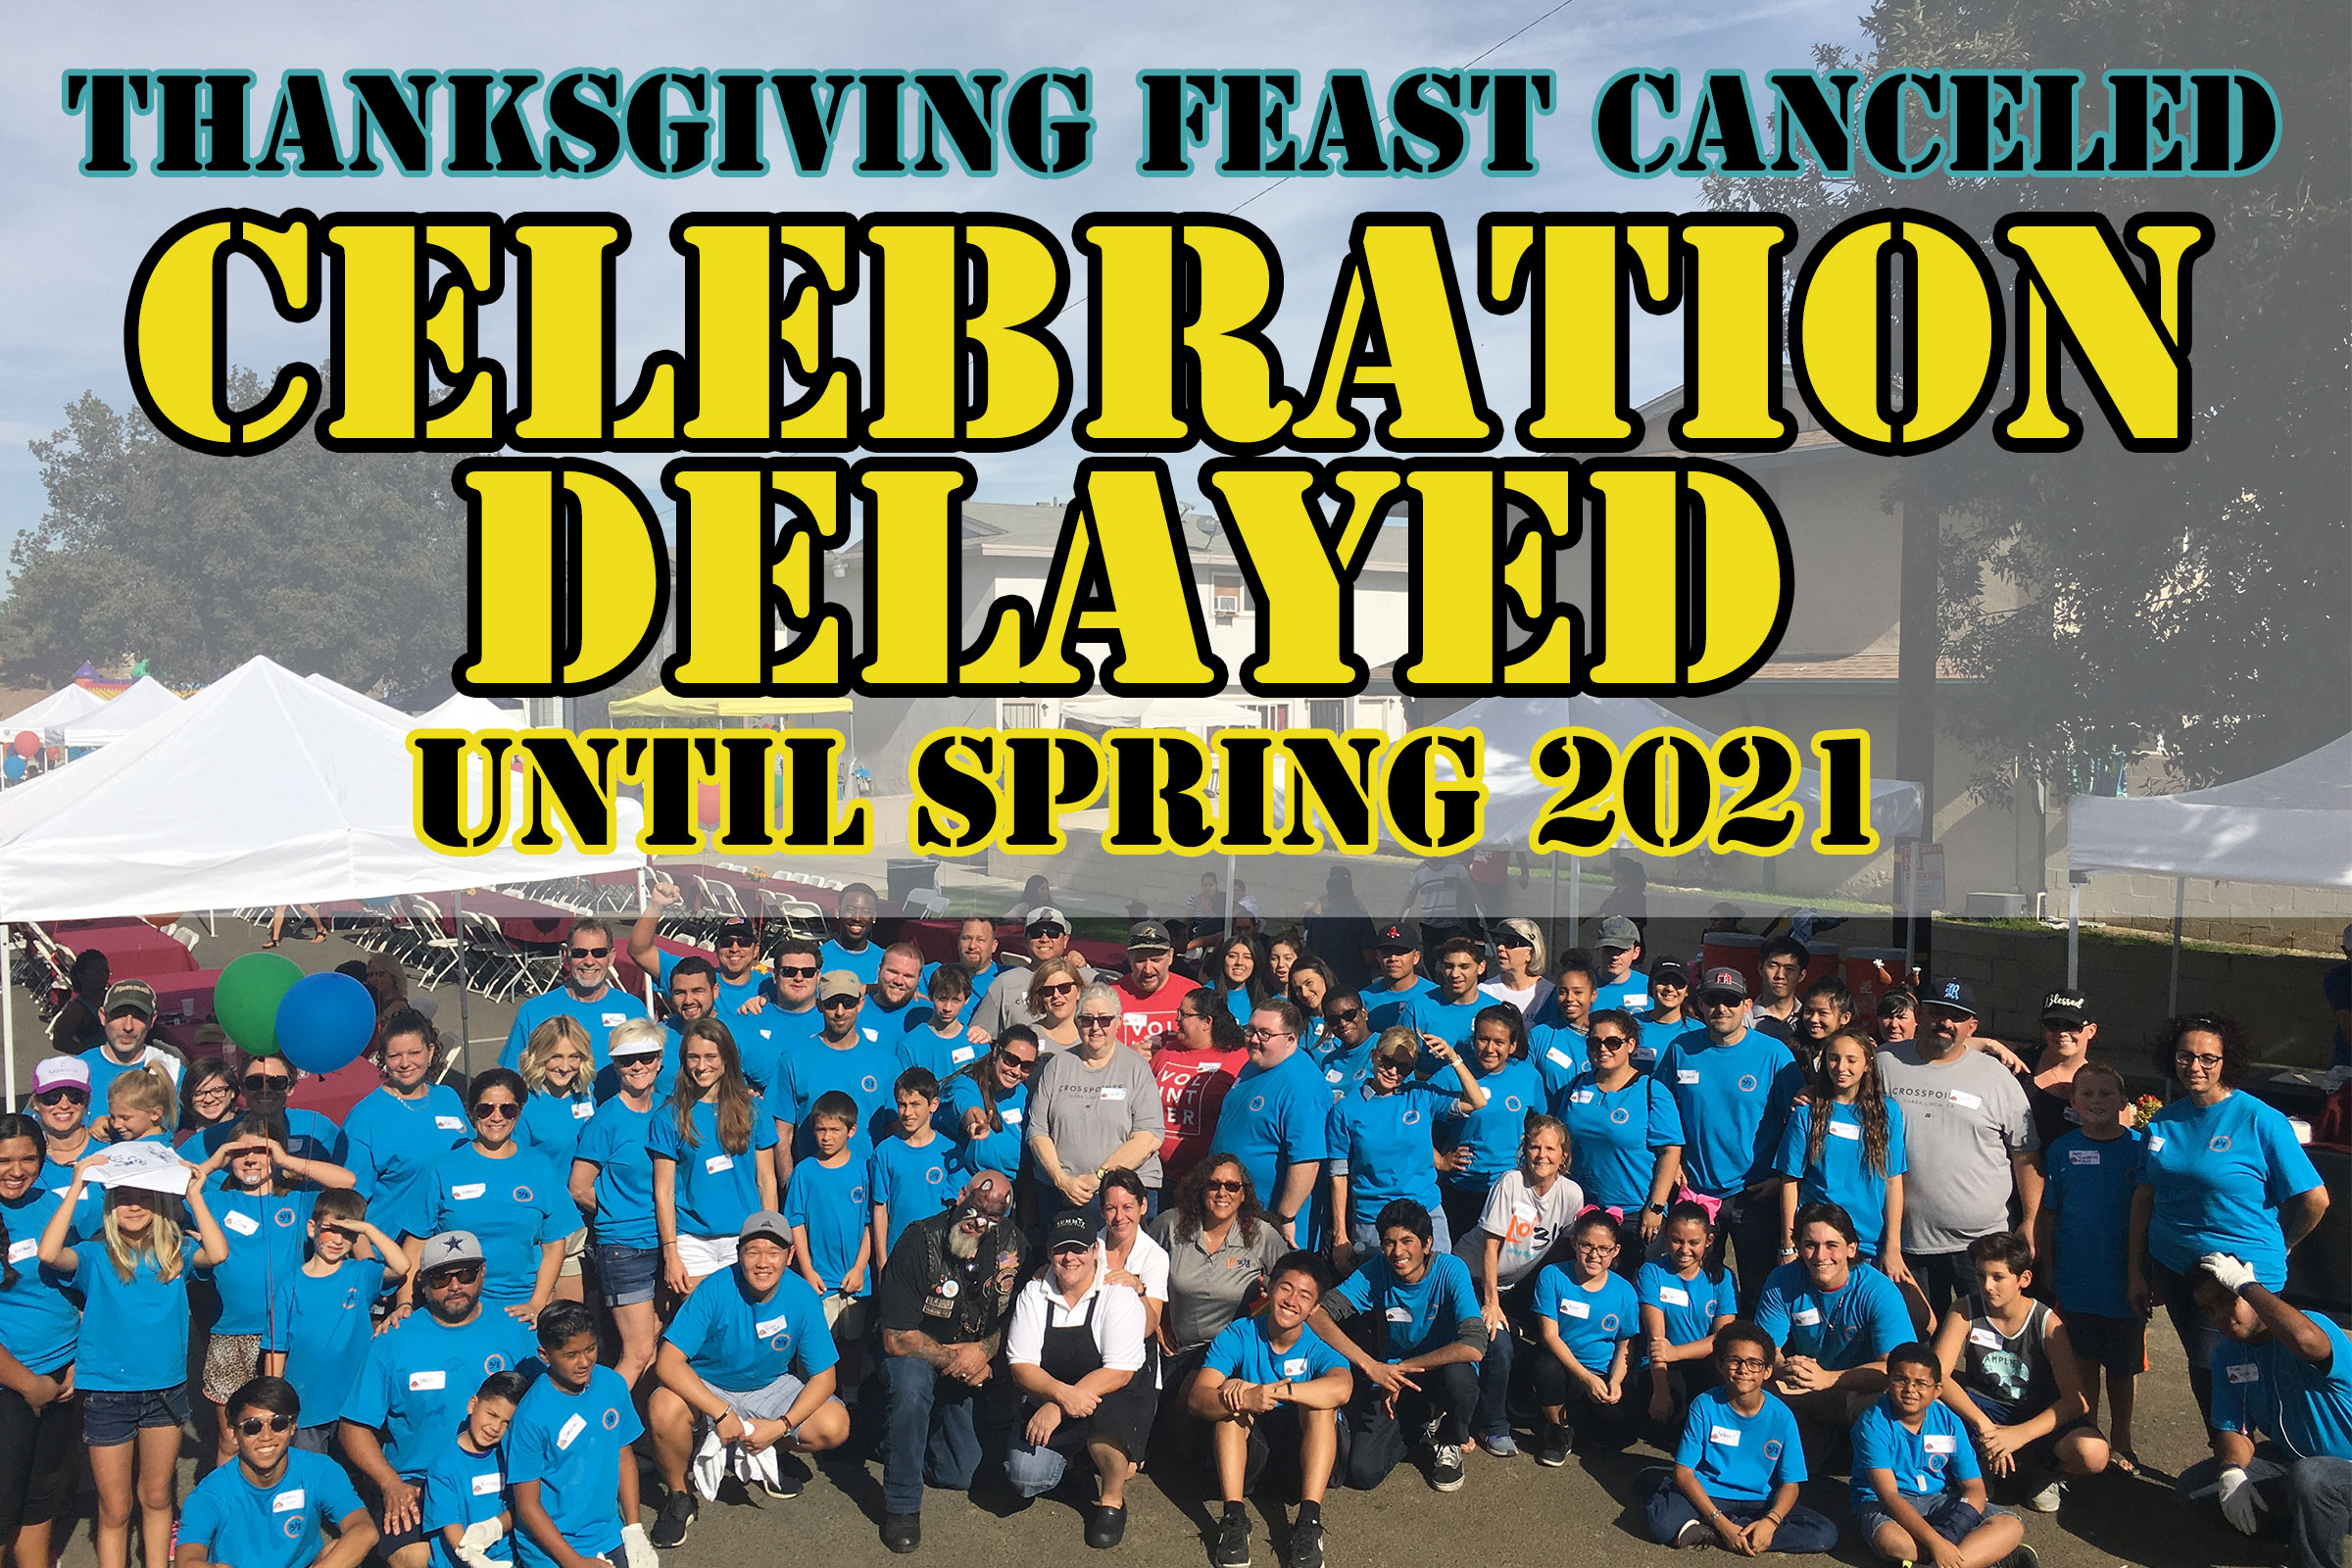 LOT318 Thanksgiving Feast Canceled